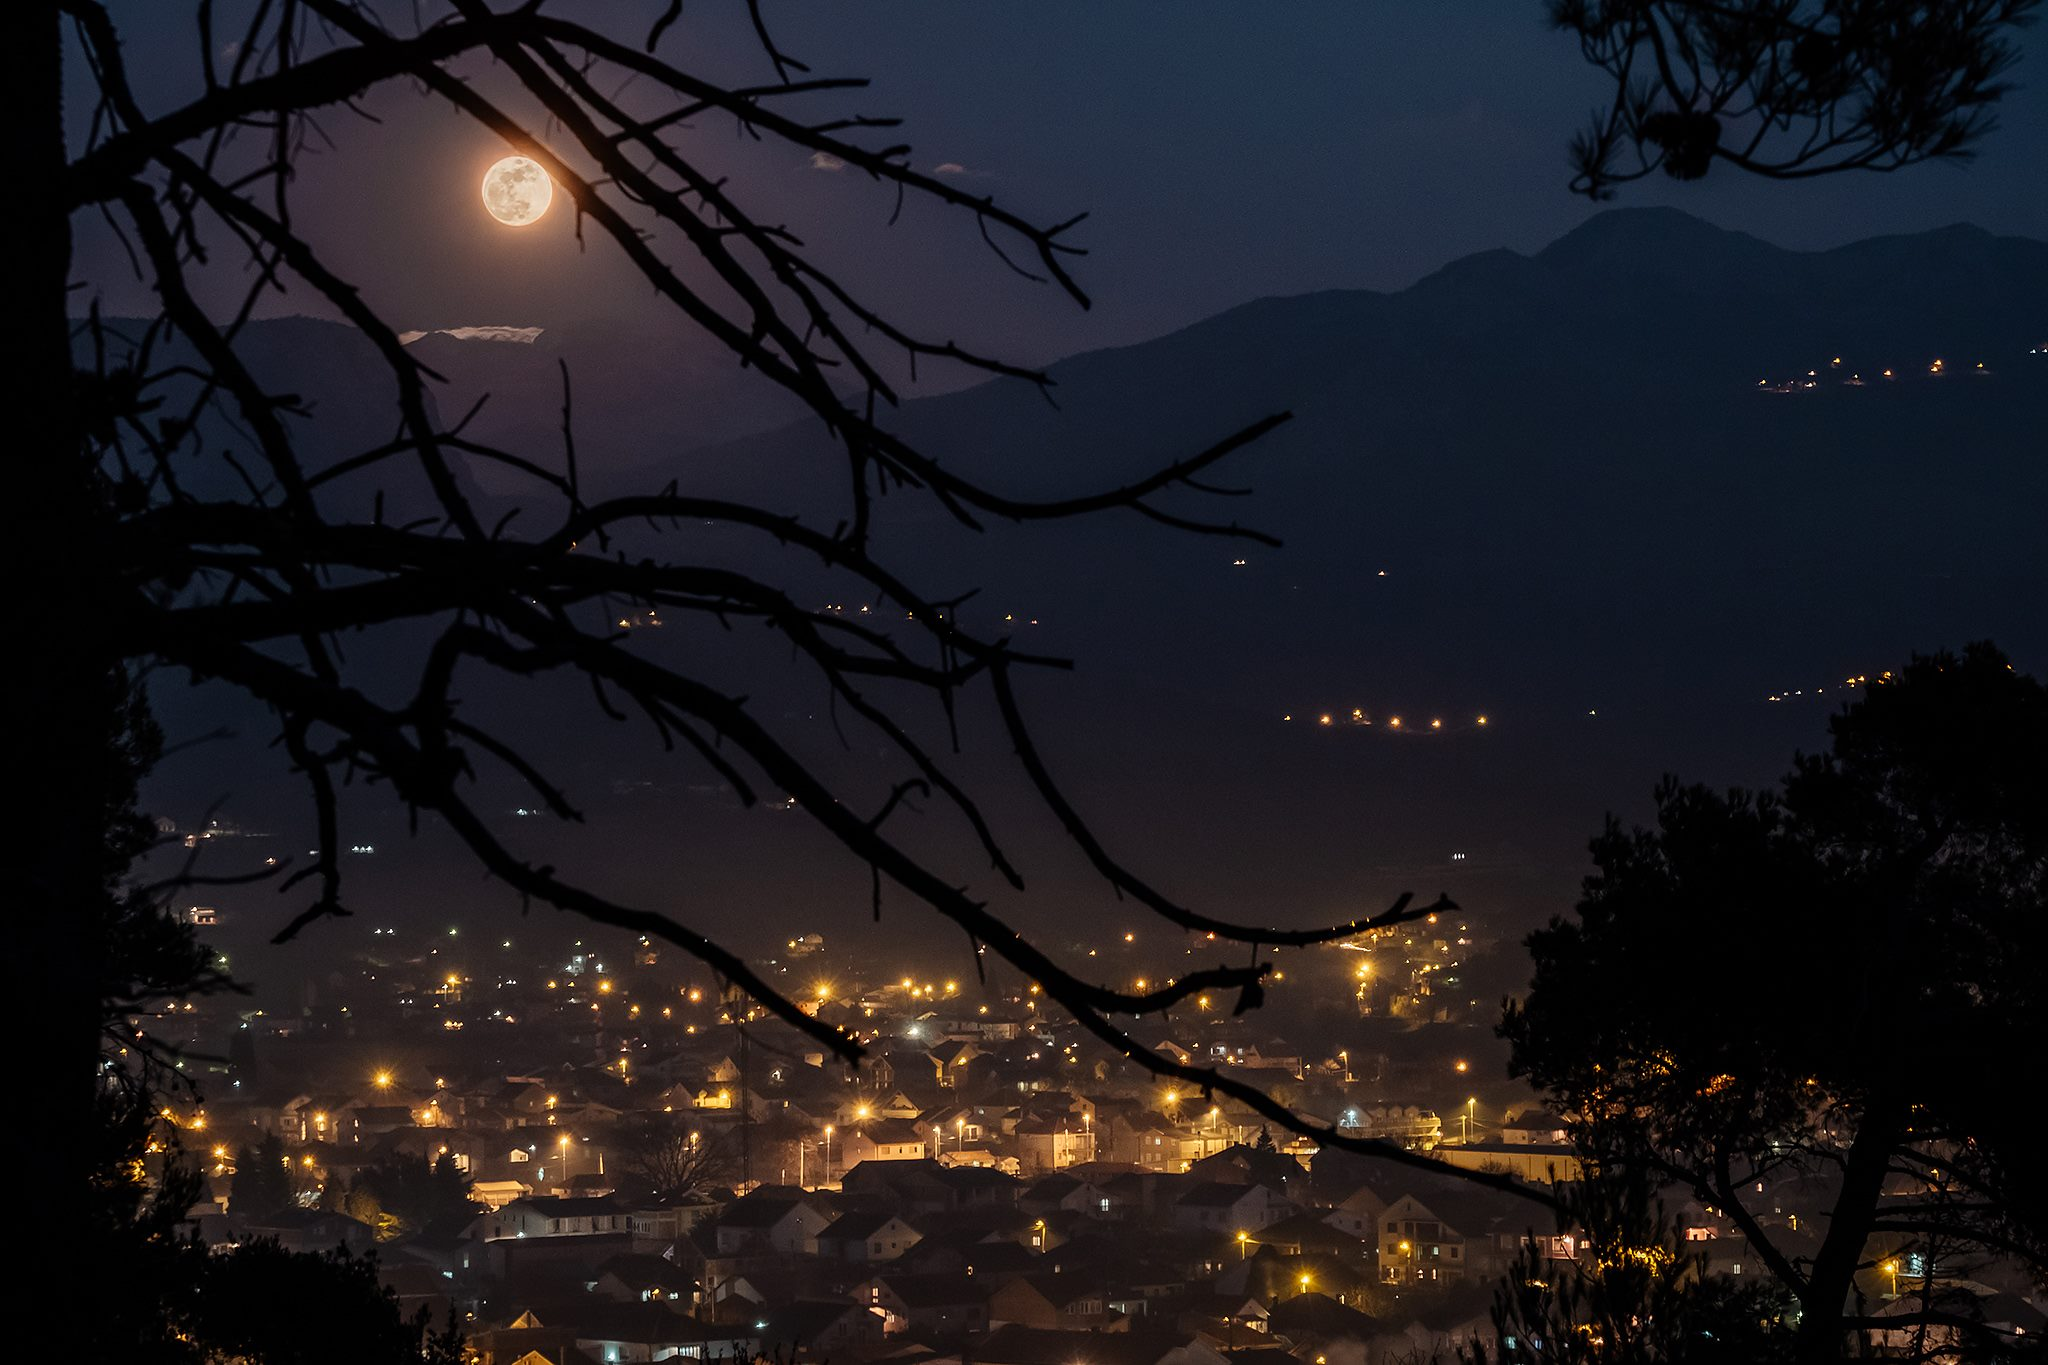 Supermoon in Podgorica, Montenegro